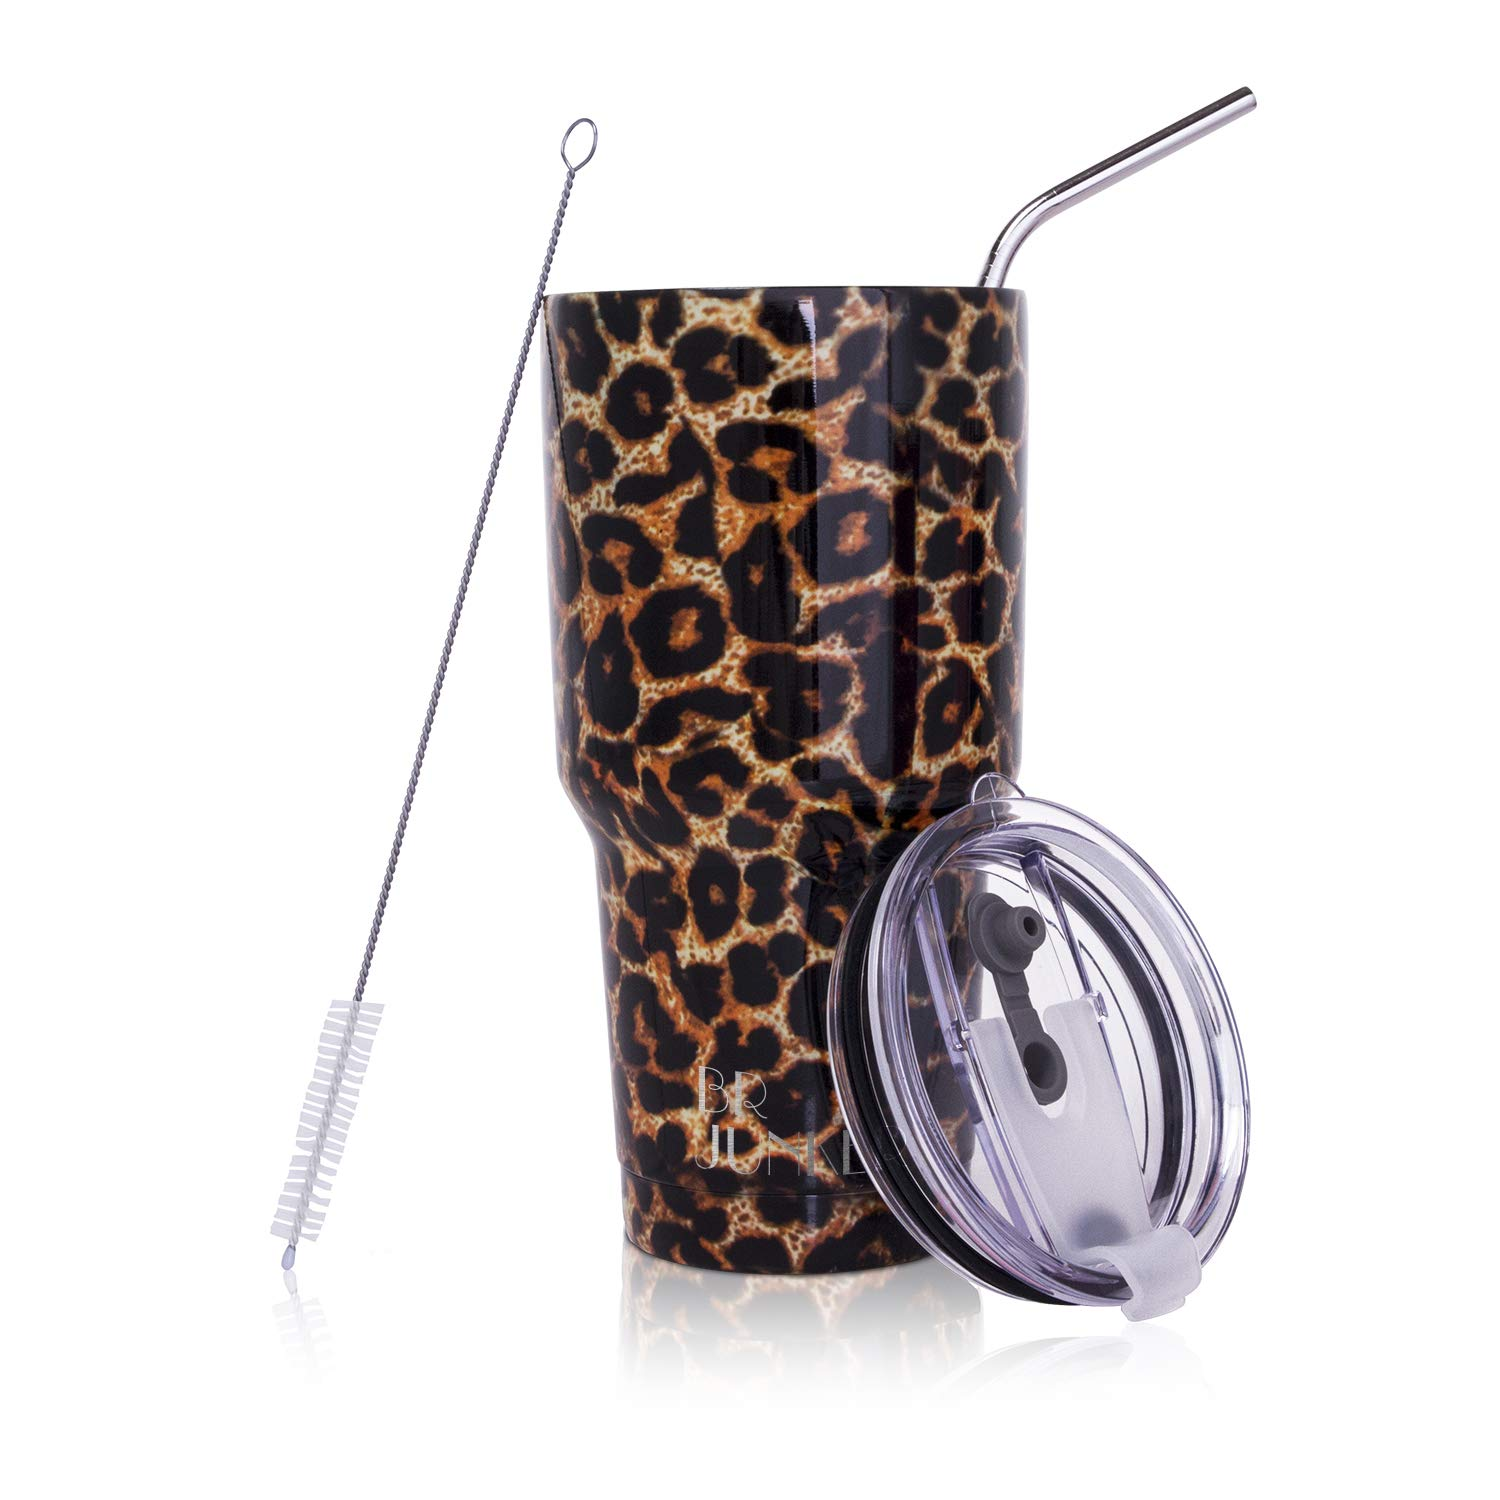 30 oz. Tumbler Double Wall Stainless Steel Vacuum Insulation Travel Mug with Crystal Clear Lid and Straw, Water Coffee Cup for Home,Office,School, Ice Drink, Hot Beverage,Leopard